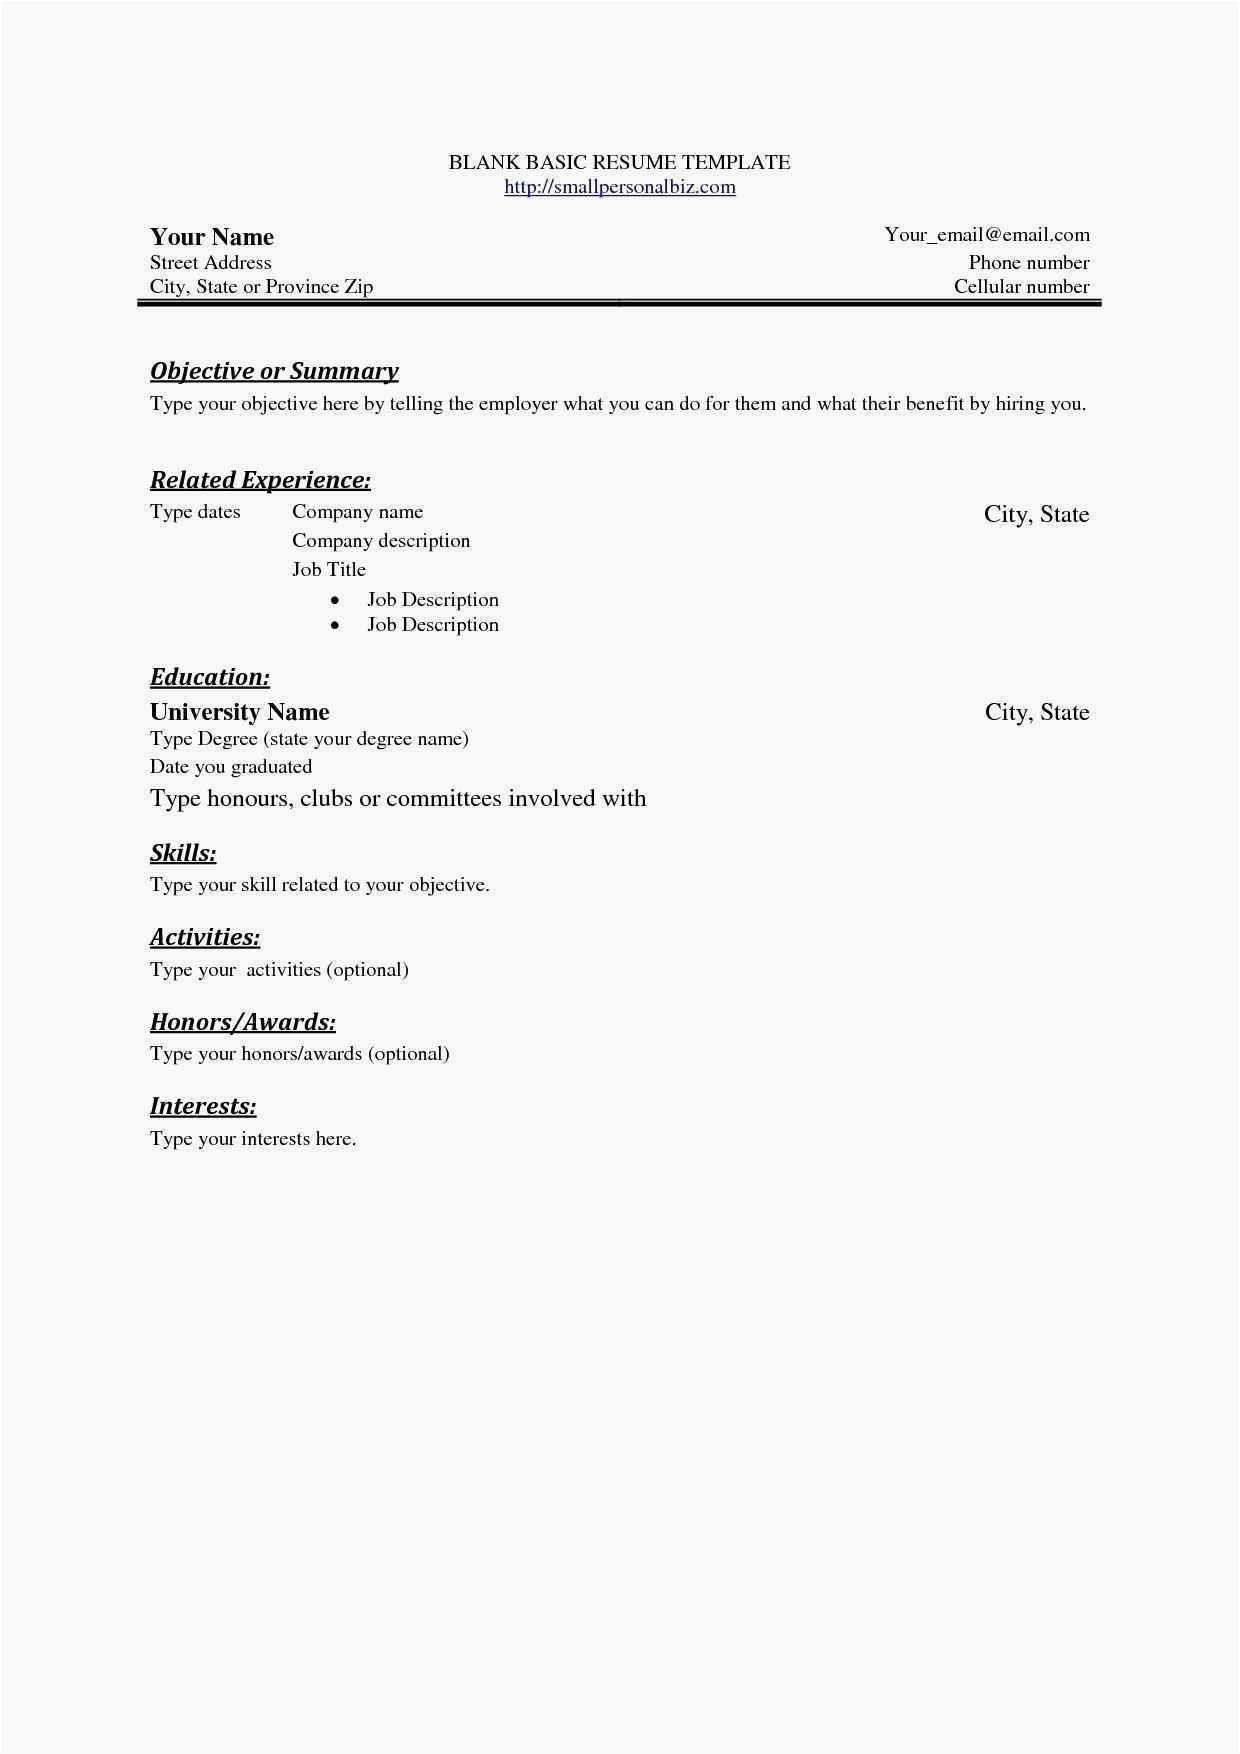 75 Awesome Gallery Of Resume Samples For Horticulture Jobs Basic Resume Simple Resume Examples Basic Resume Examples